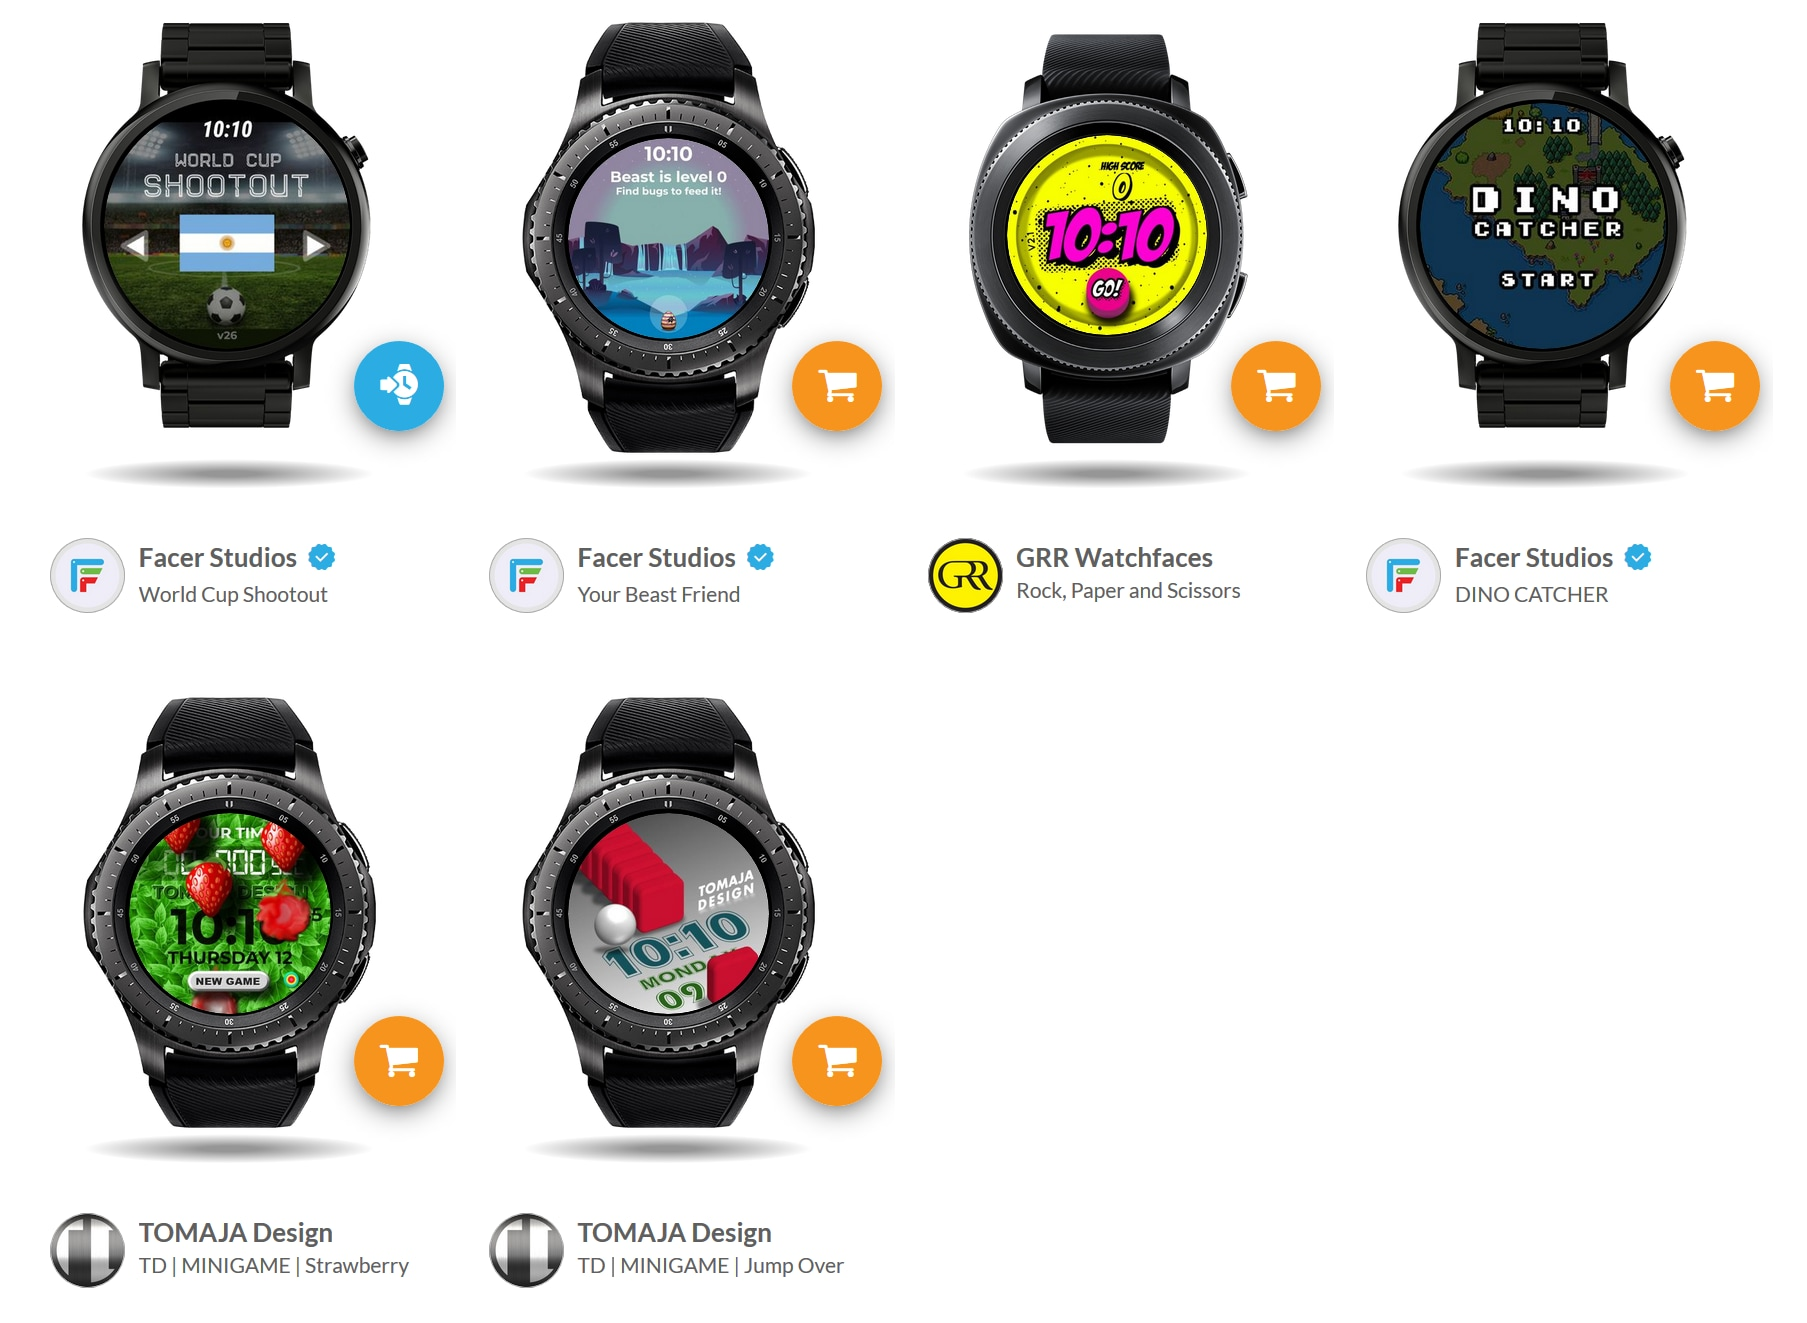 facer-watch-face-game-1